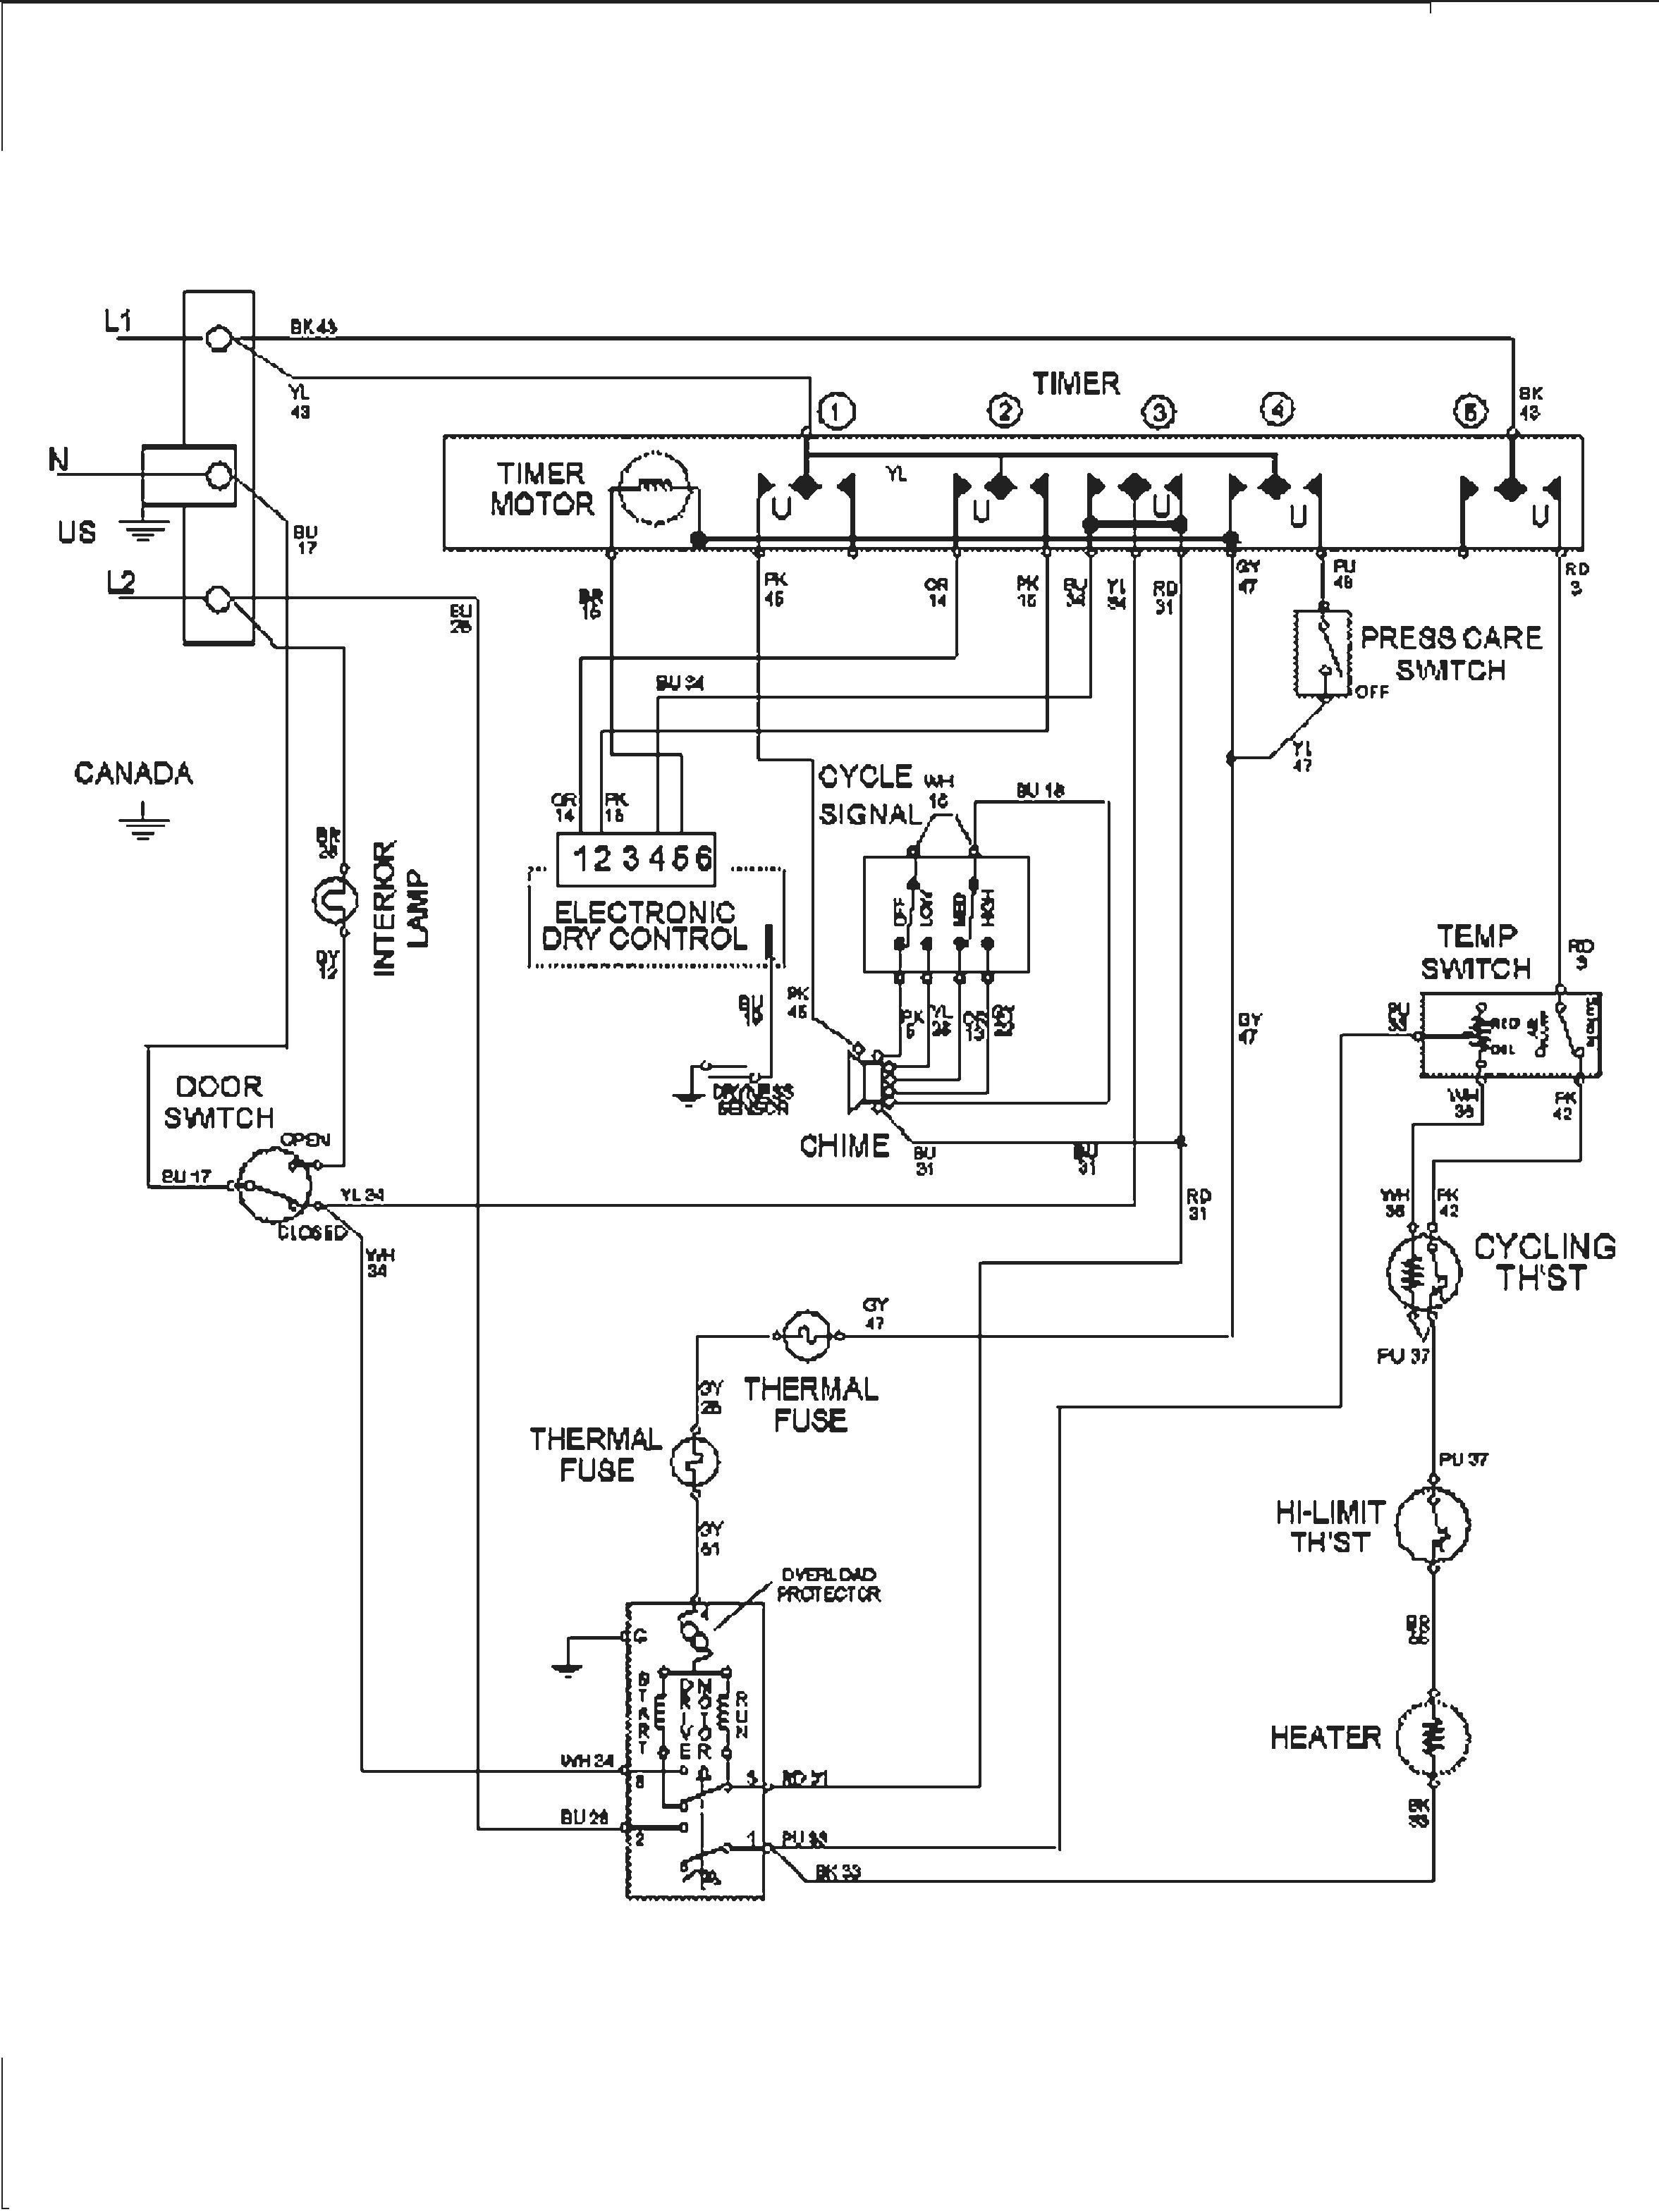 ge dryer start switch wiring diagram Download-Ge Dryer Start Switch Wiring Diagram Best Maytag Neptune Dryer Wiring Diagram Natebird 7-p